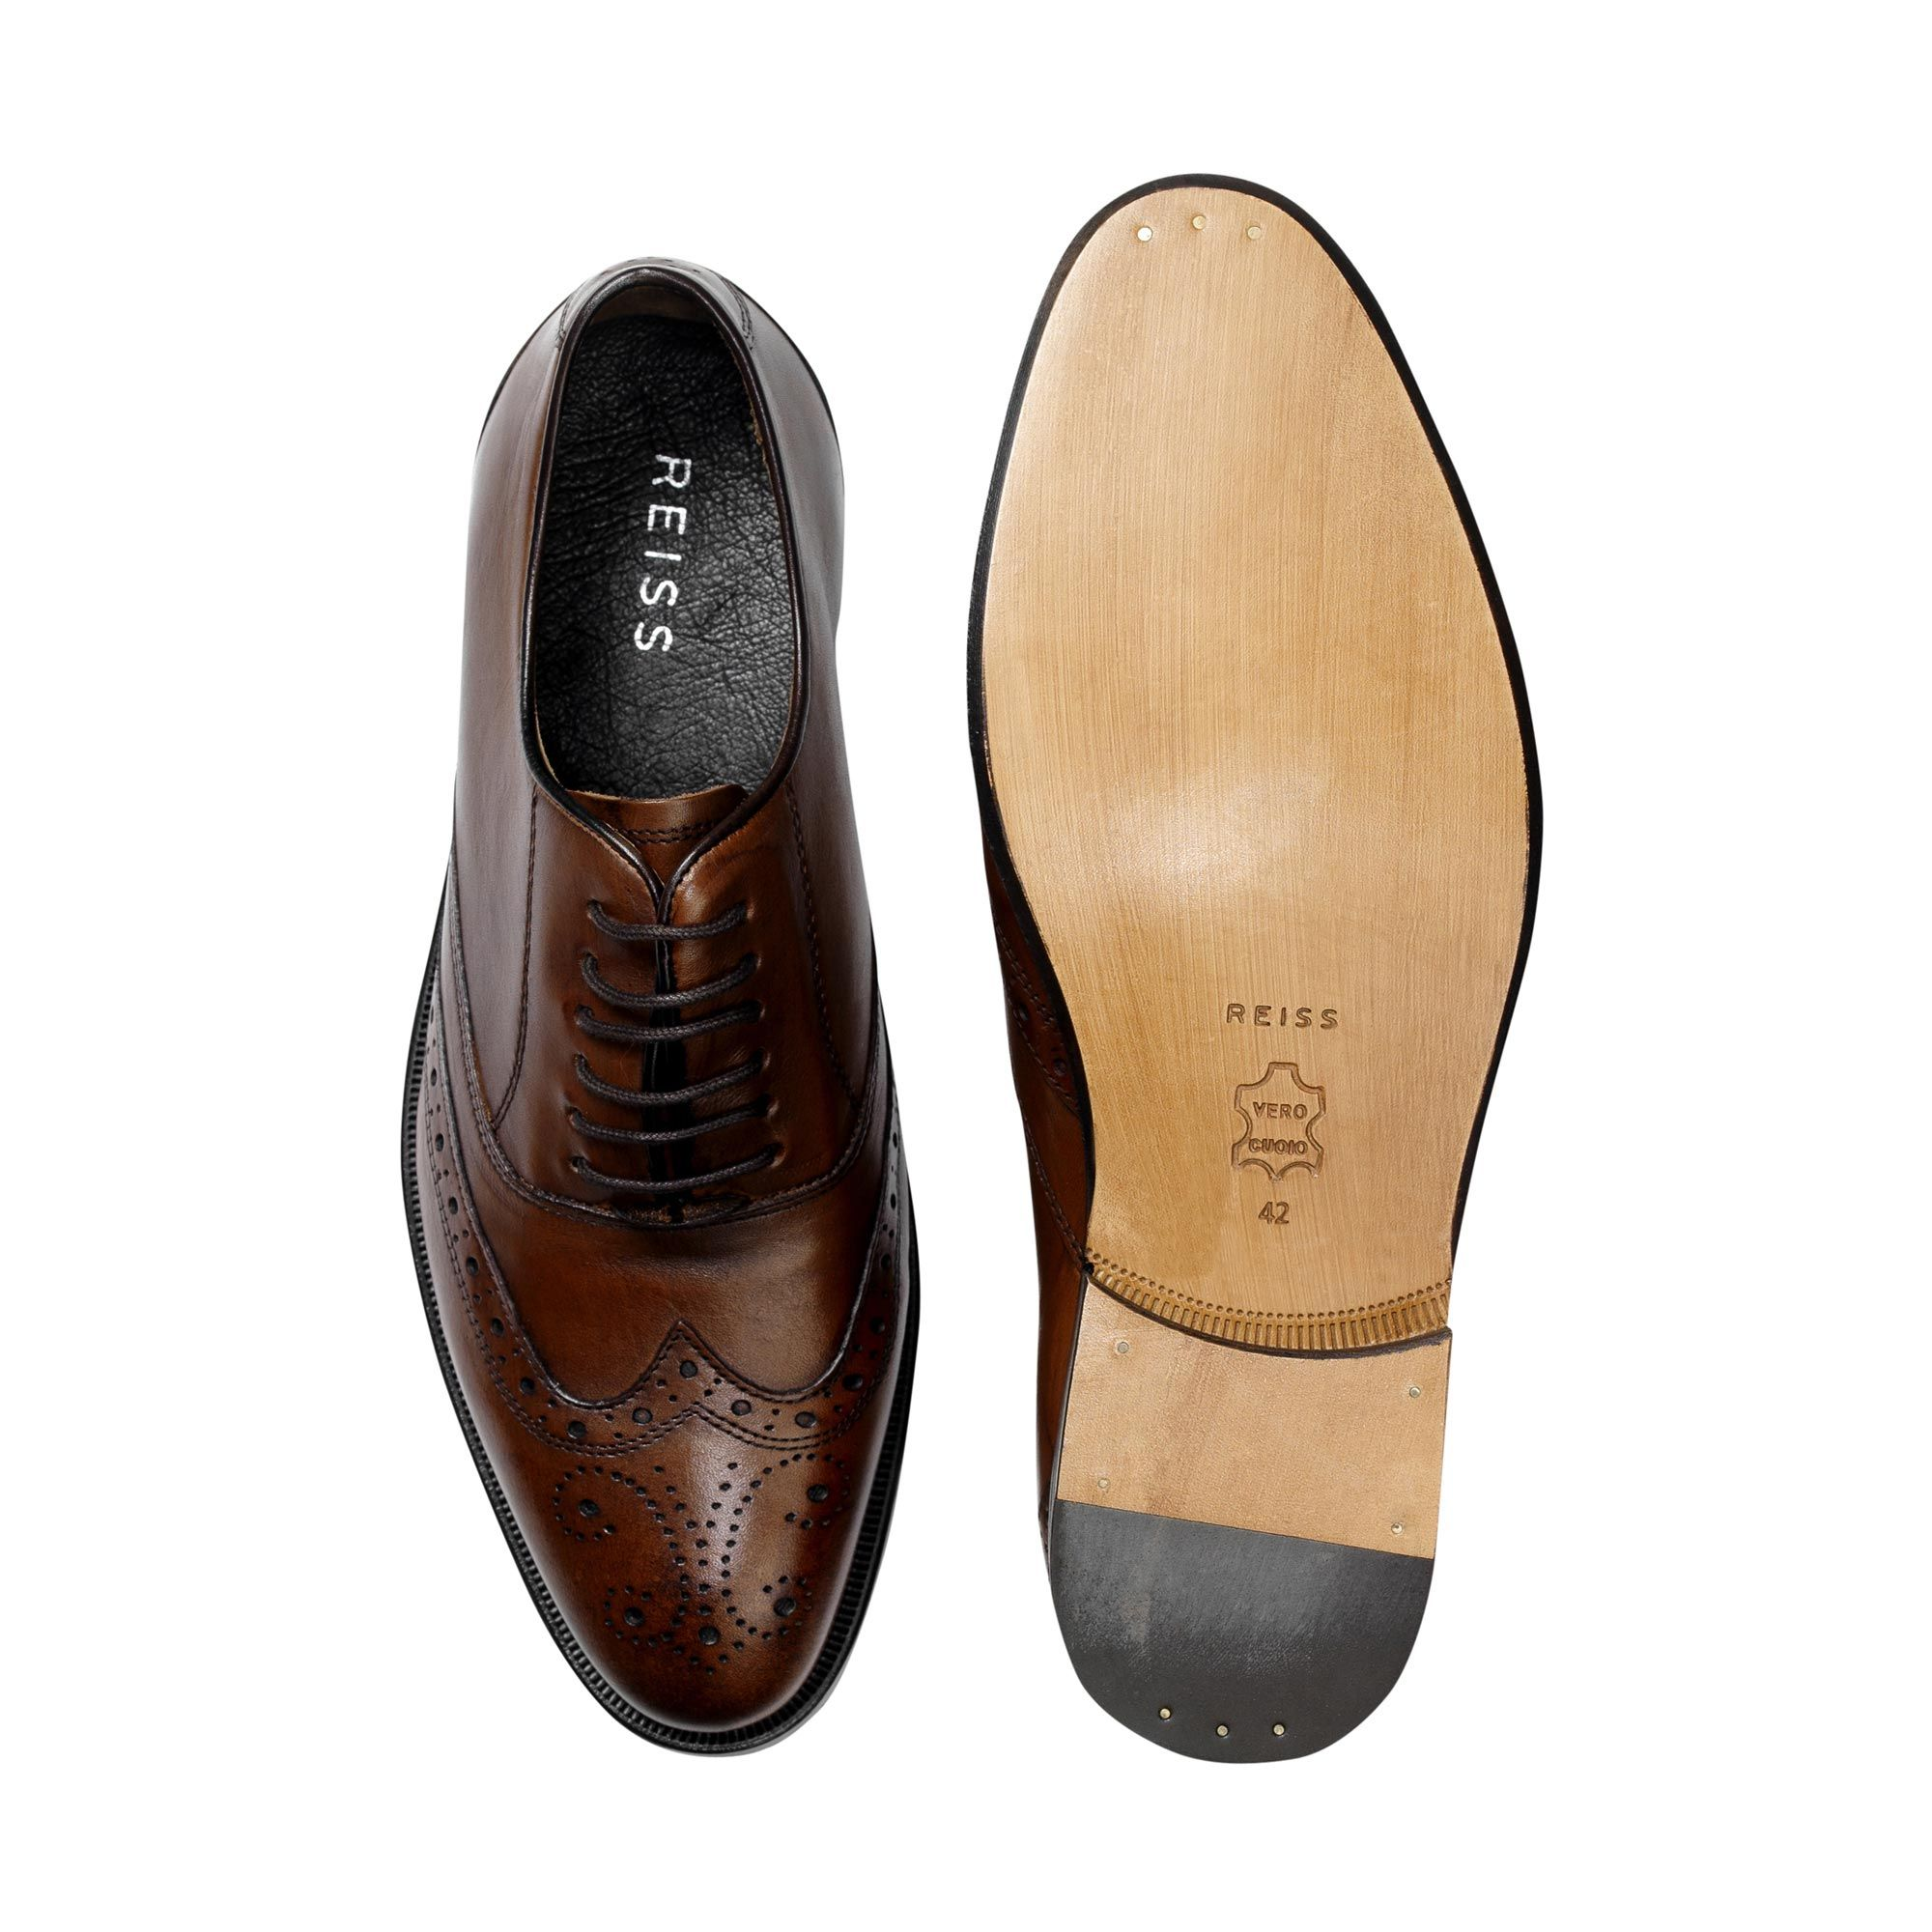 Brogue shoe | Mens designer shoes, Shoes, Gentleman shoes